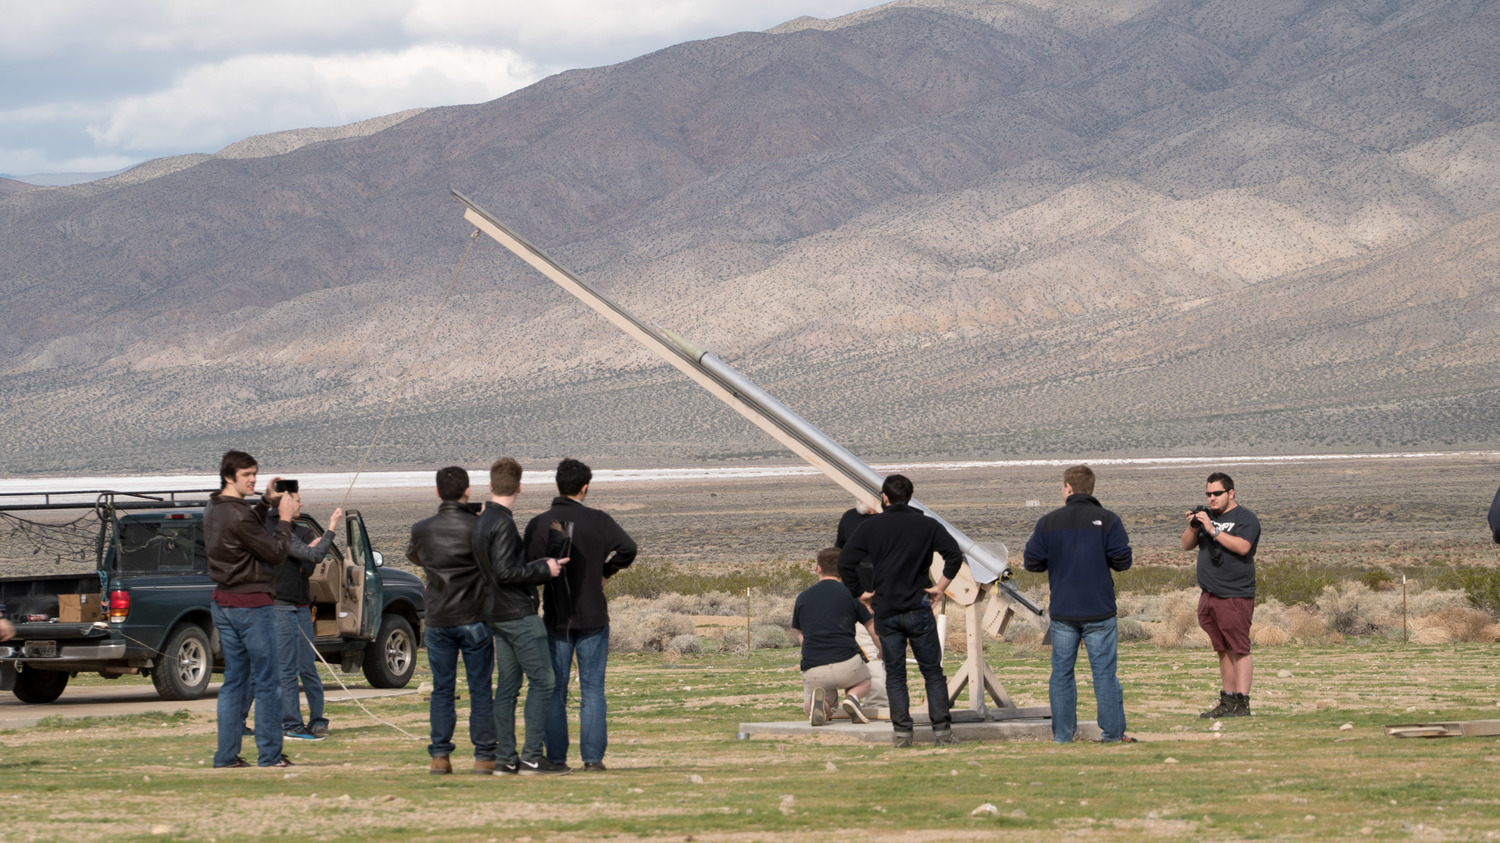 Student Space Systems prepare to launch their rocket into space from the Mojave Desert in California.